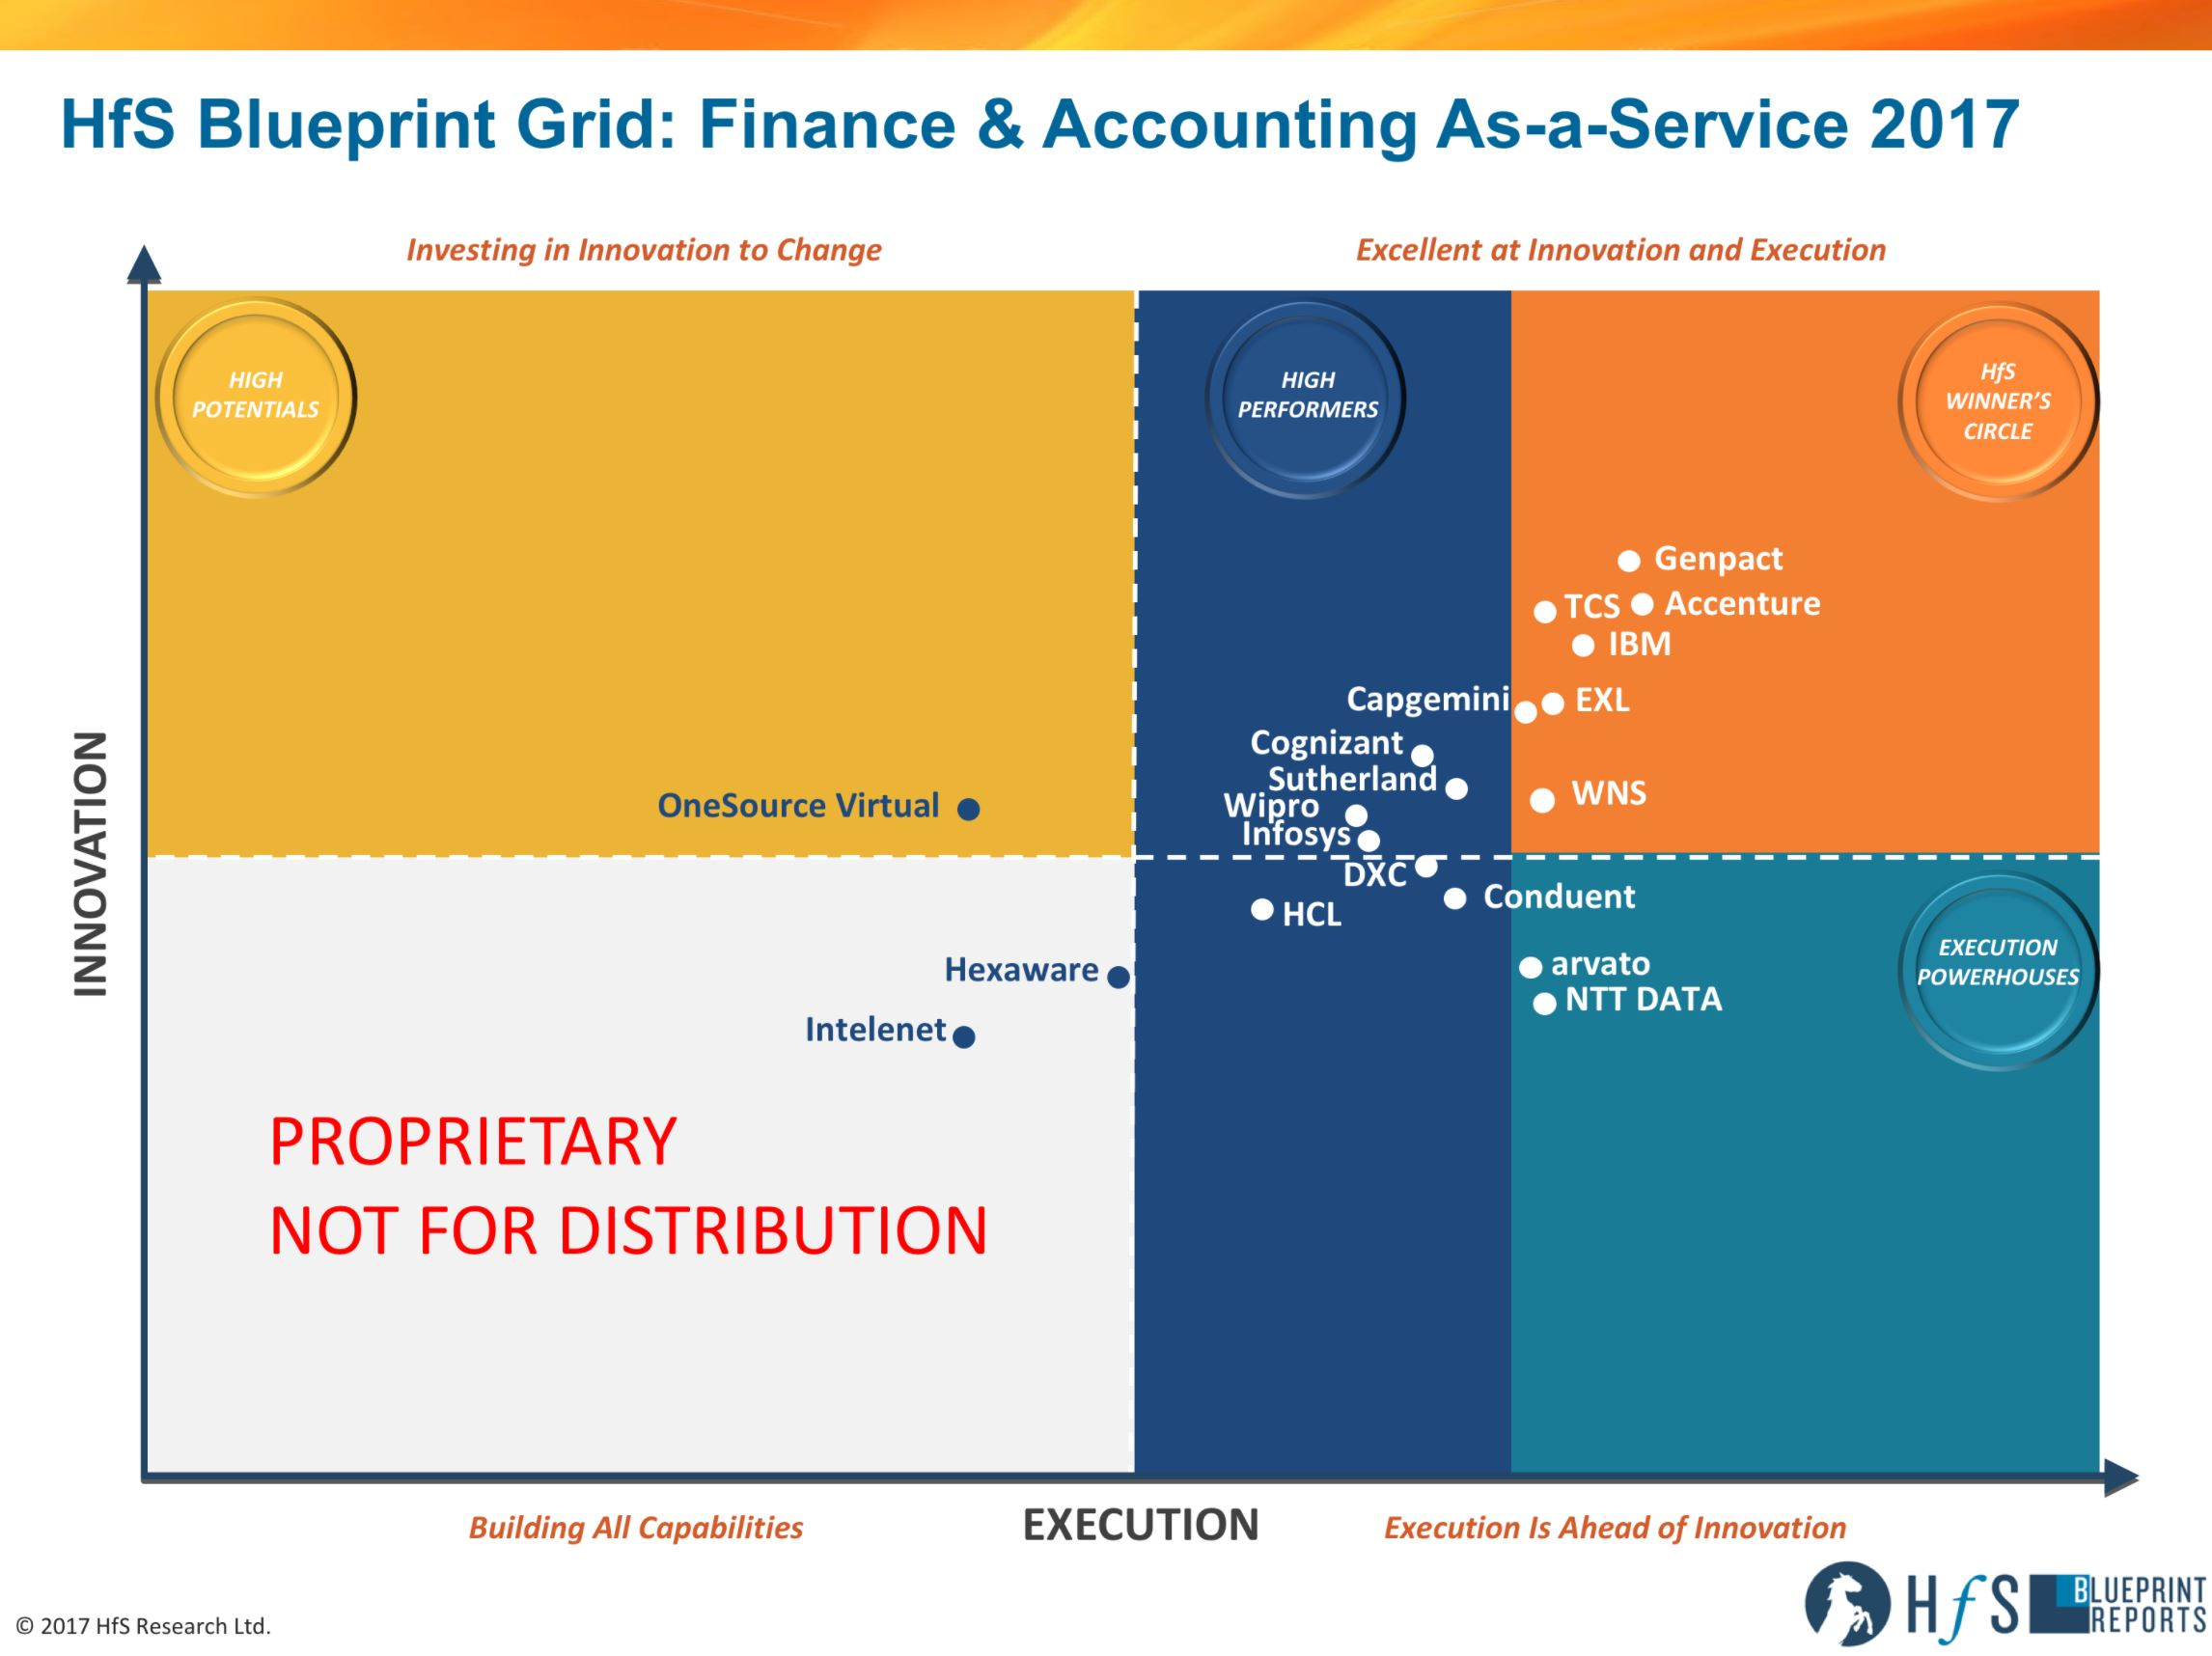 Meet F&A's new Big Seven: Genpact, Accenture, IBM, TCS, EXL, Capgemini and WNS